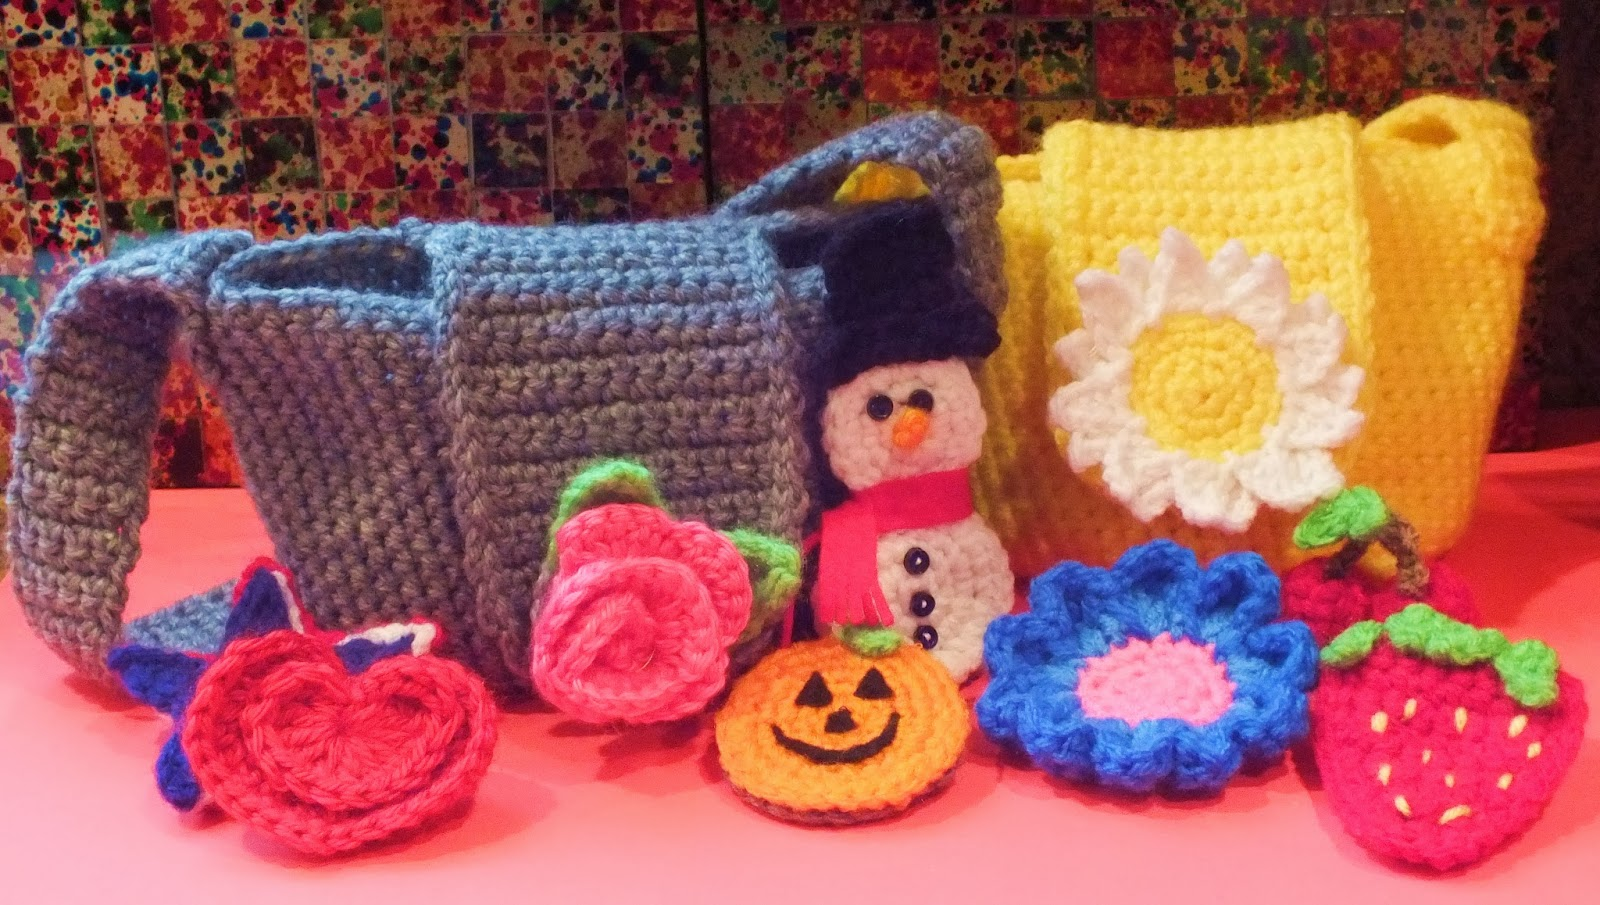 Crochet Easter Bag Pattern : Connies Spot? Crocheting, Crafting, Creating!: Little ...